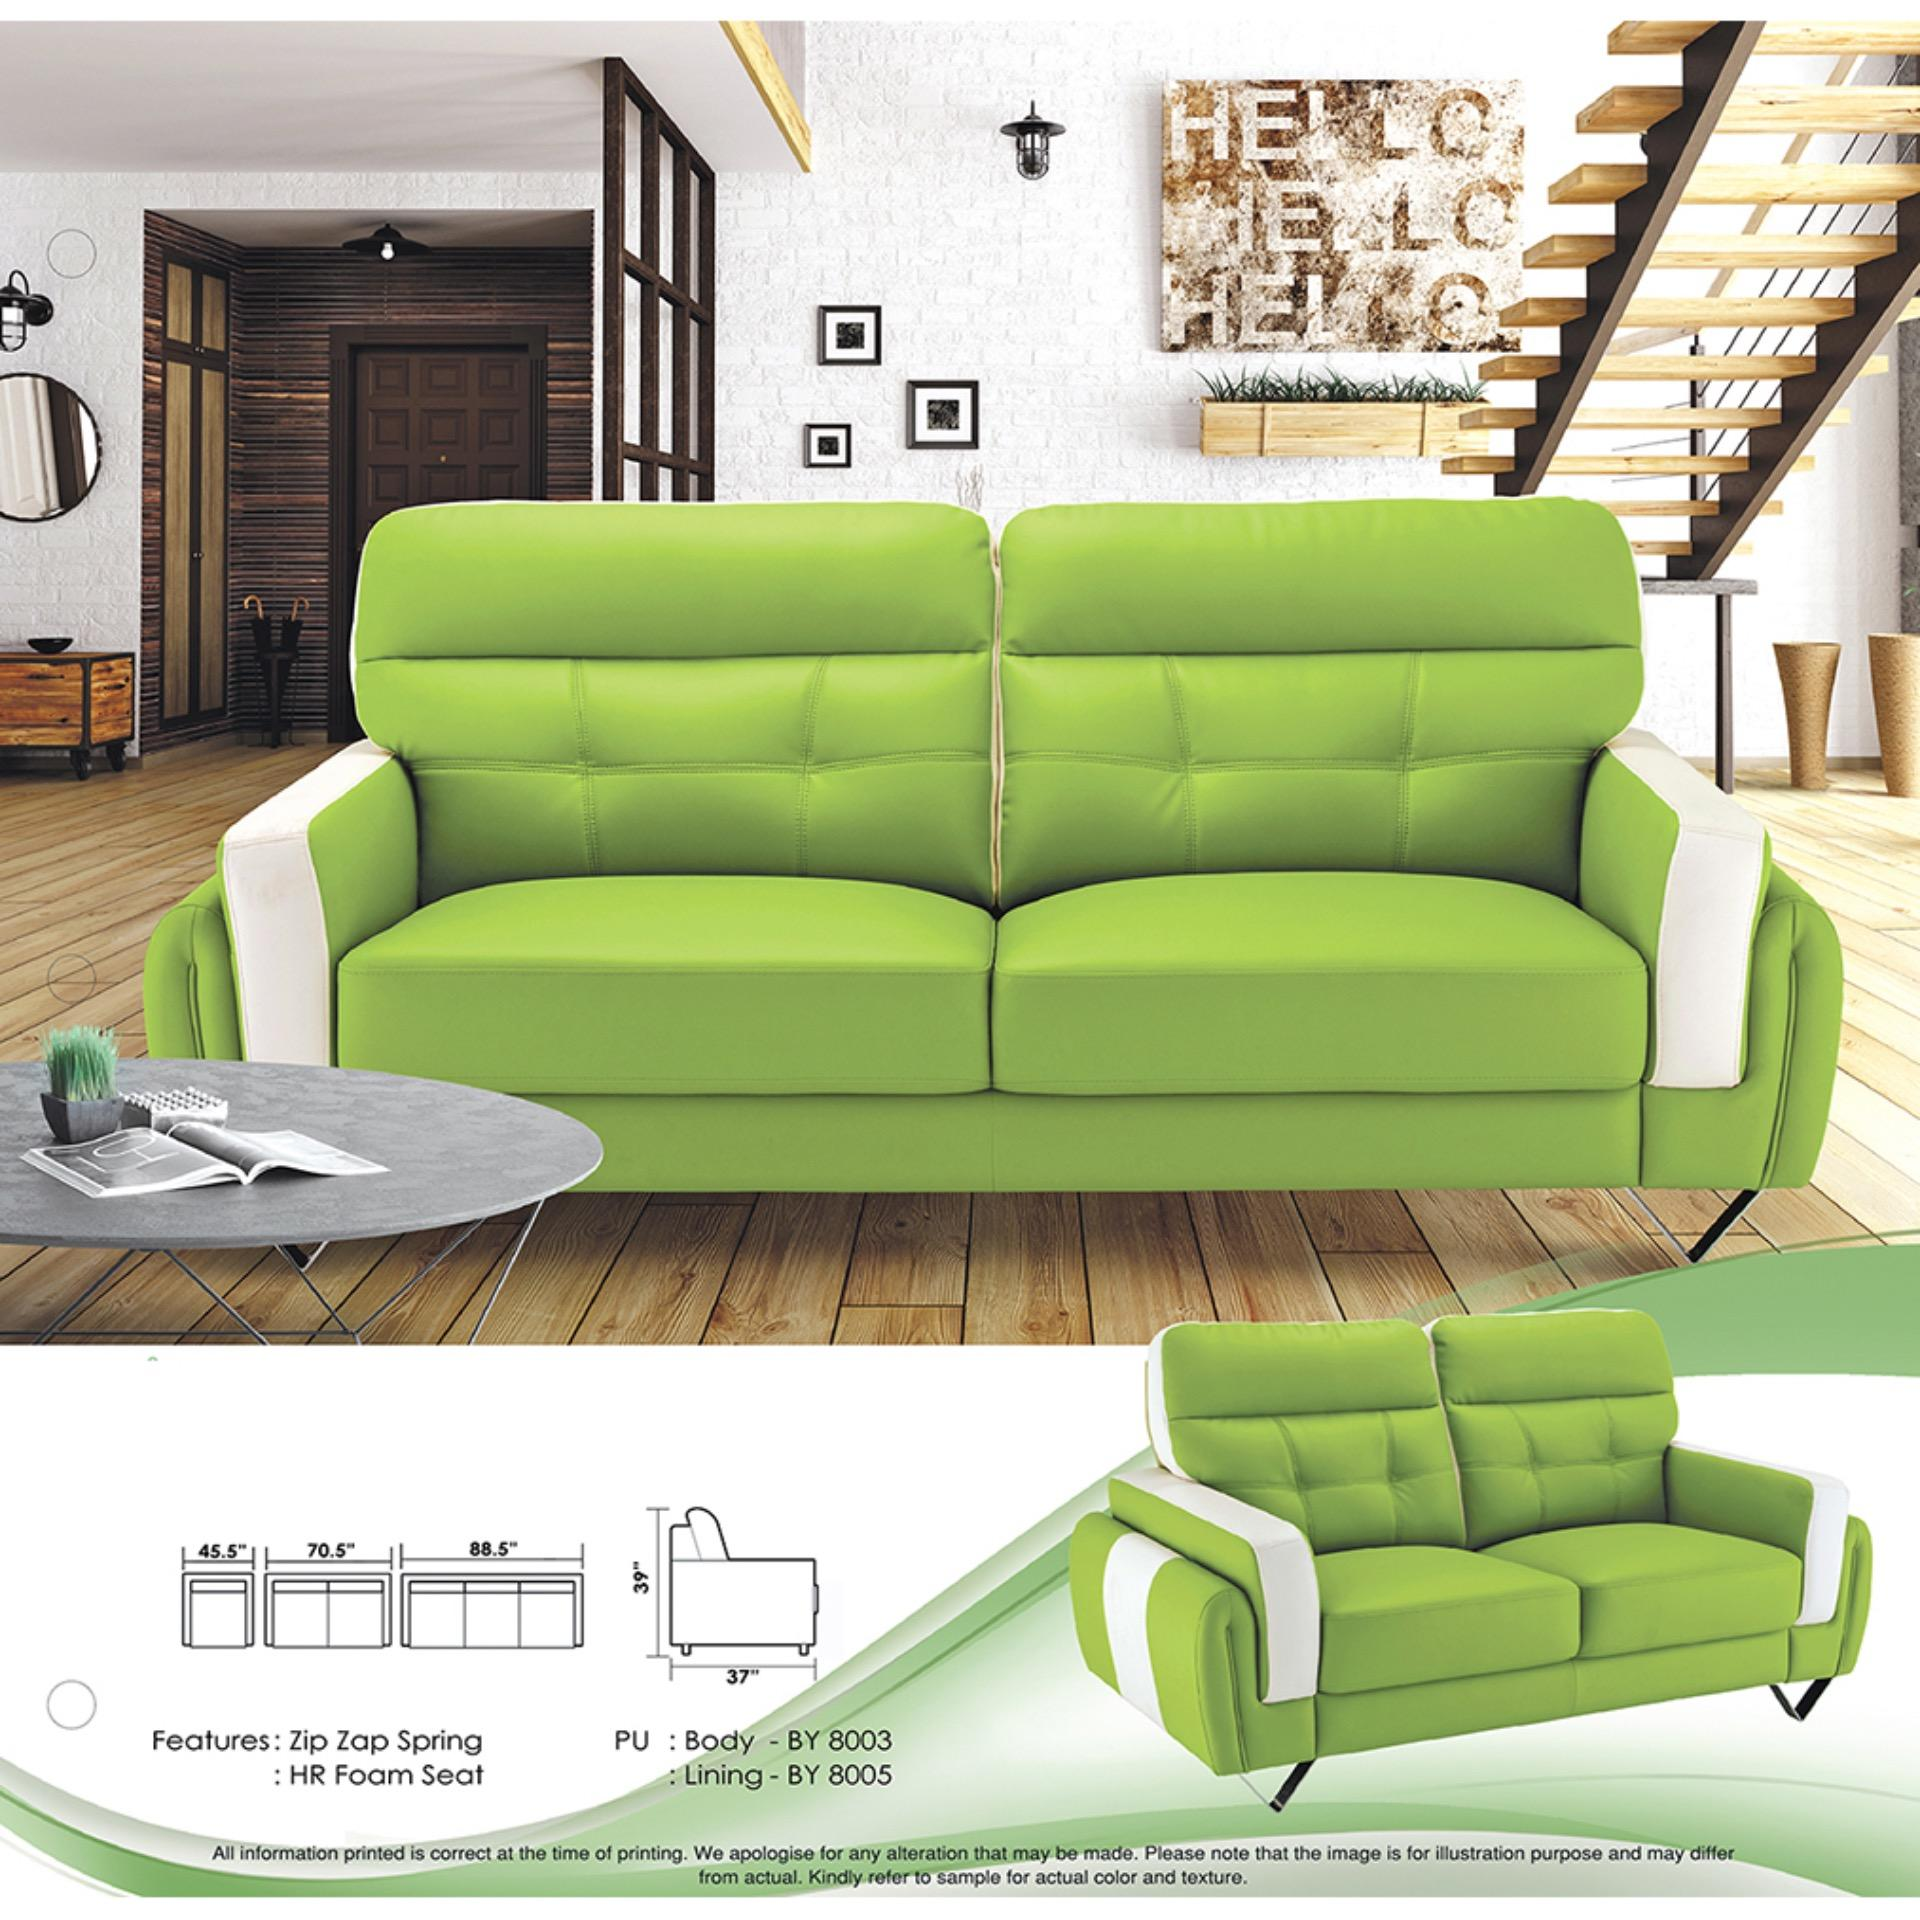 Sofa Set 1 2 3 Fully Leather Sofa Lounge Chair Living Hall Sofa